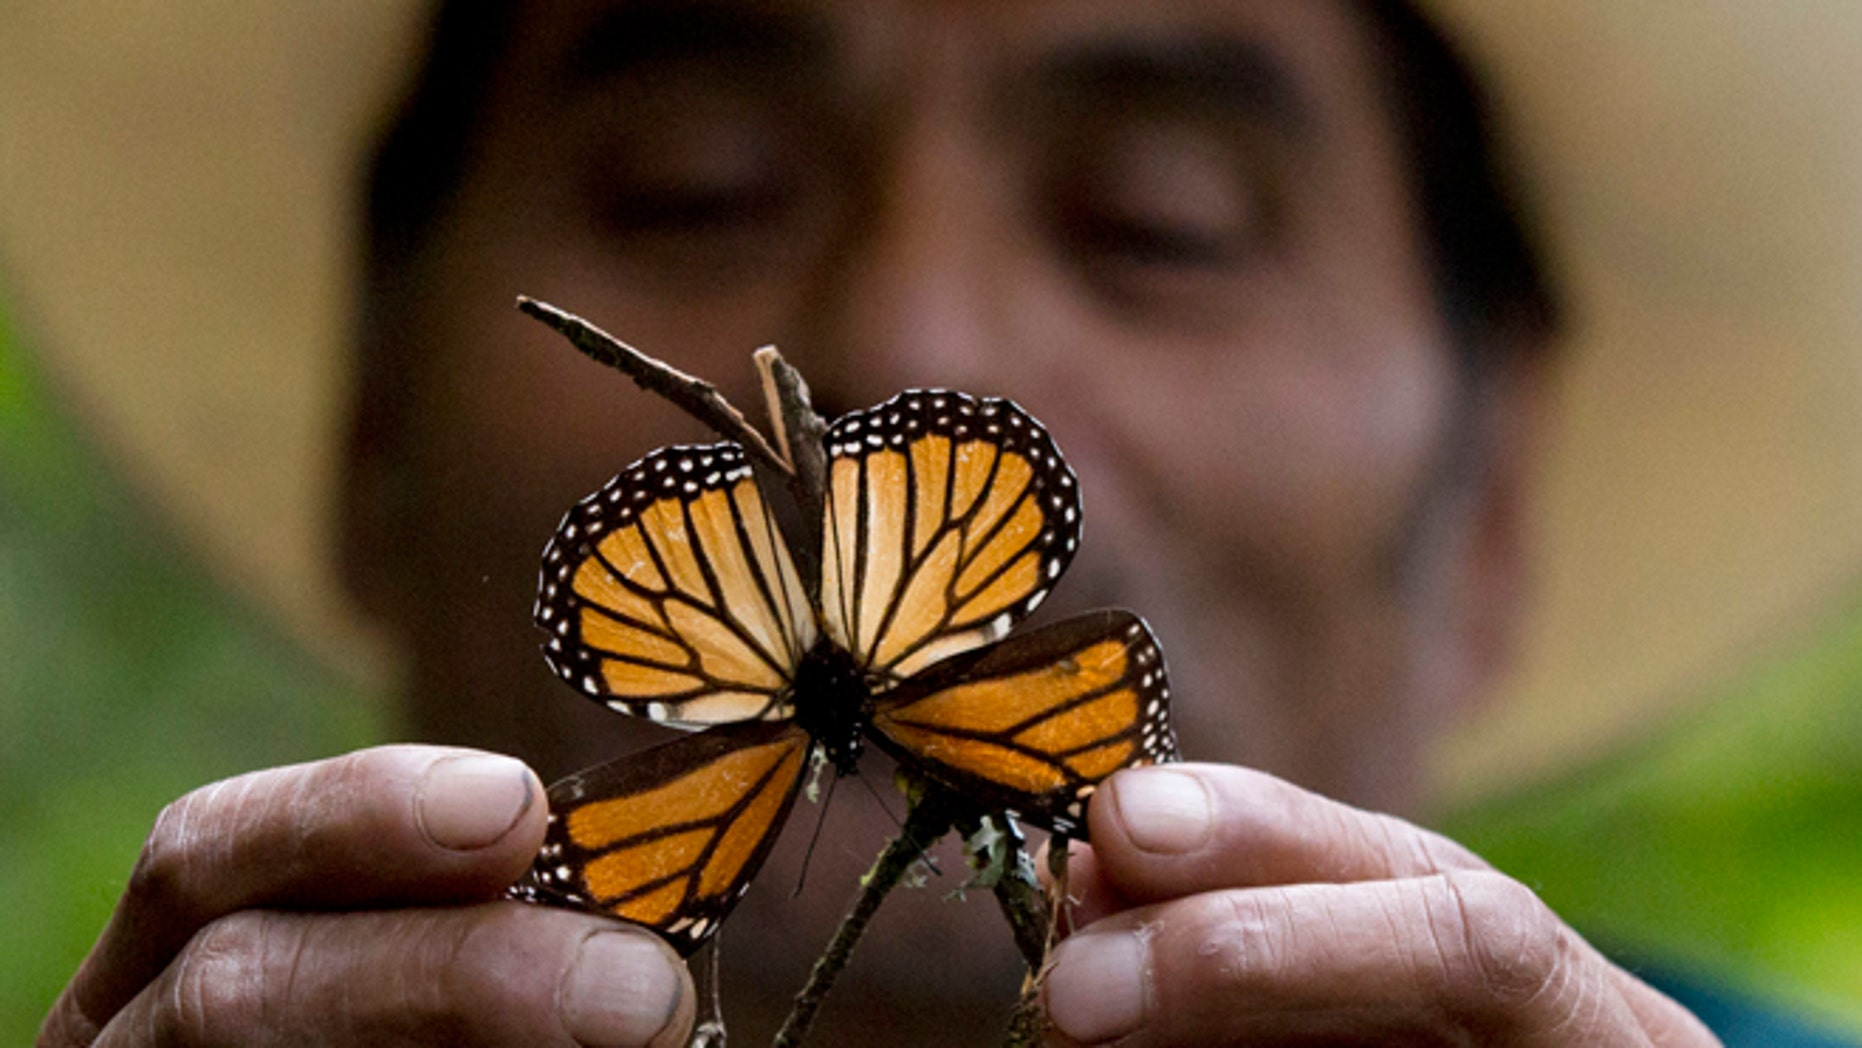 CORRECTS DATE  - In this Nov. 12, 2015, file photo, a guide holds up a damaged and dying butterfly at the monarch butterfly reserve in Piedra Herrada, Mexico State, Mexico. Storms caused a big spike in the number of trees blown down or lost to heavy branch damage in forests where migrating monarch butterflies spend the winter in central Mexico, experts reported Tuesday, Aug. 23, 2016. (AP Photo/Rebecca Blackwell, File)